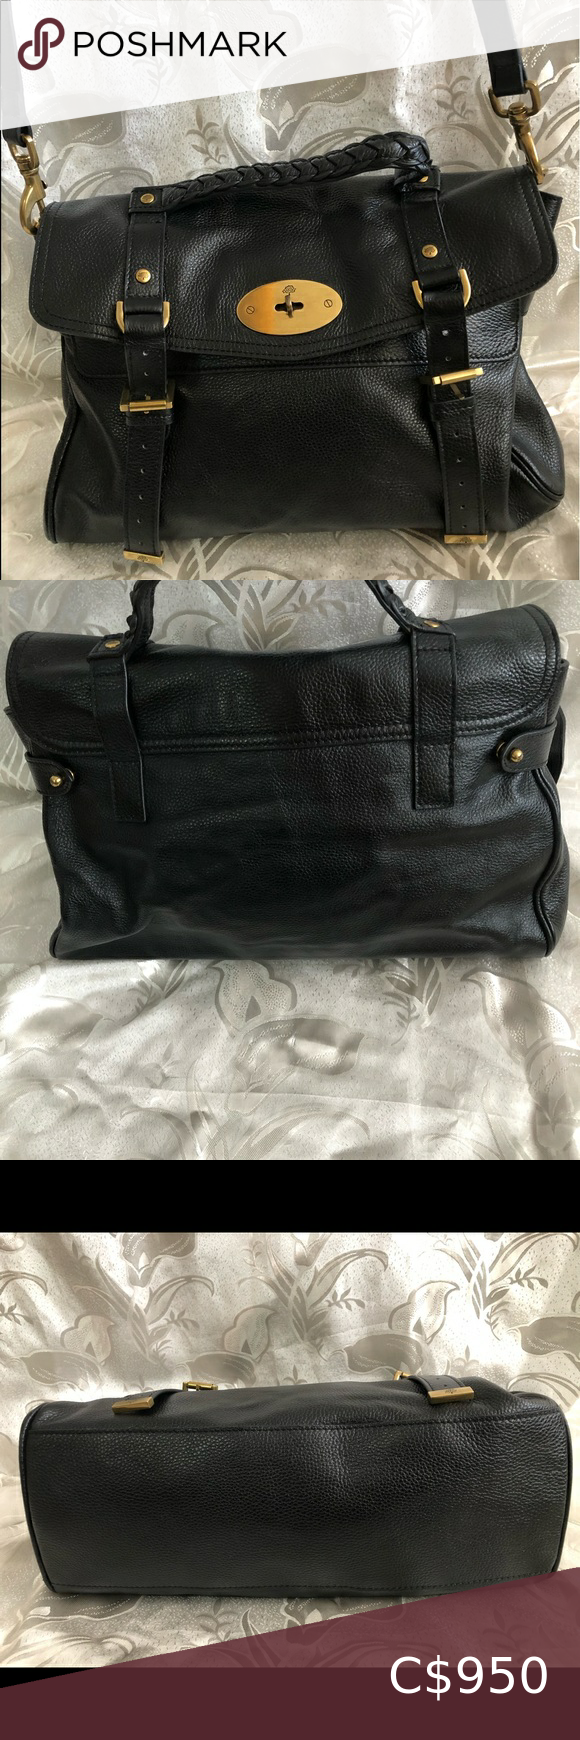 MULBERRY AUTHENTIC LEATHER BLACK TWO WAY BAG #mulberrybag